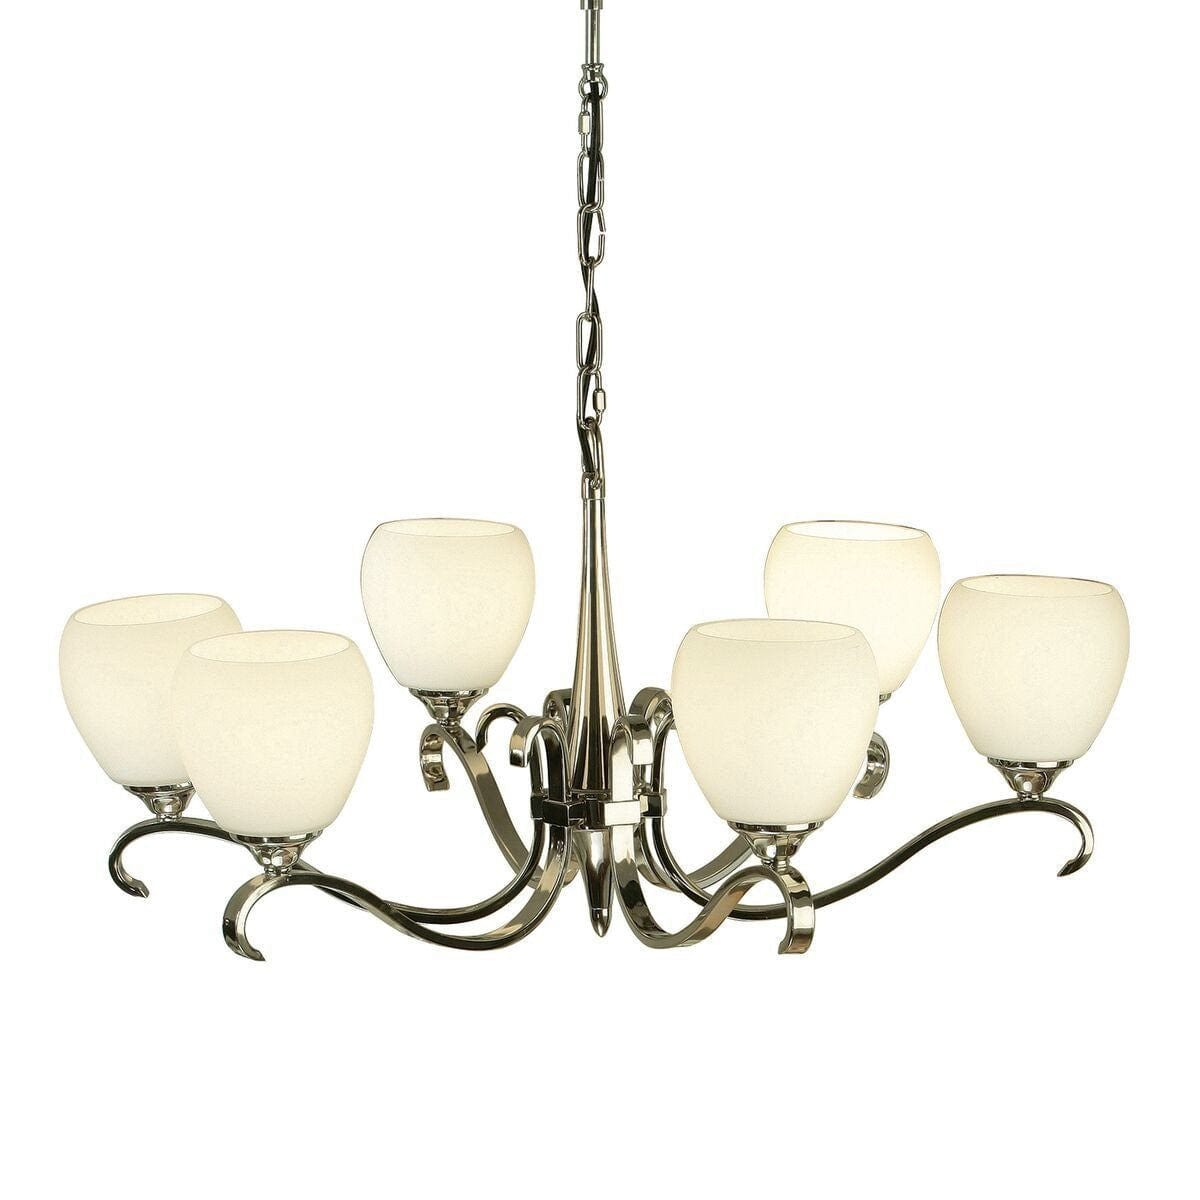 Art Deco Ceiling Light - Columbia 6 Light Polished Nickel Finish Chandelier 63443